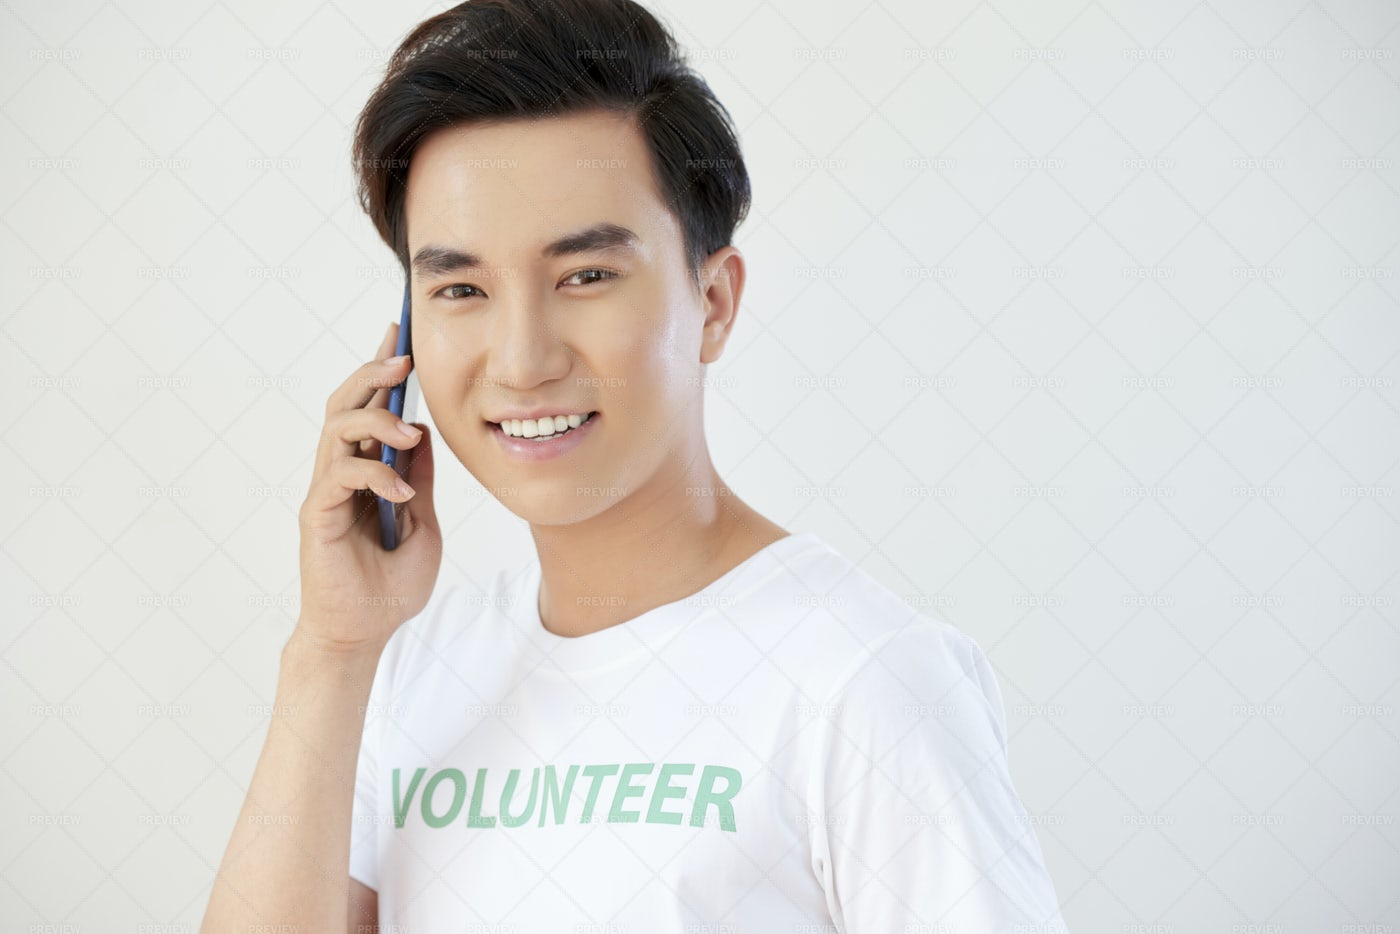 Young Man Talking On The Phone: Stock Photos